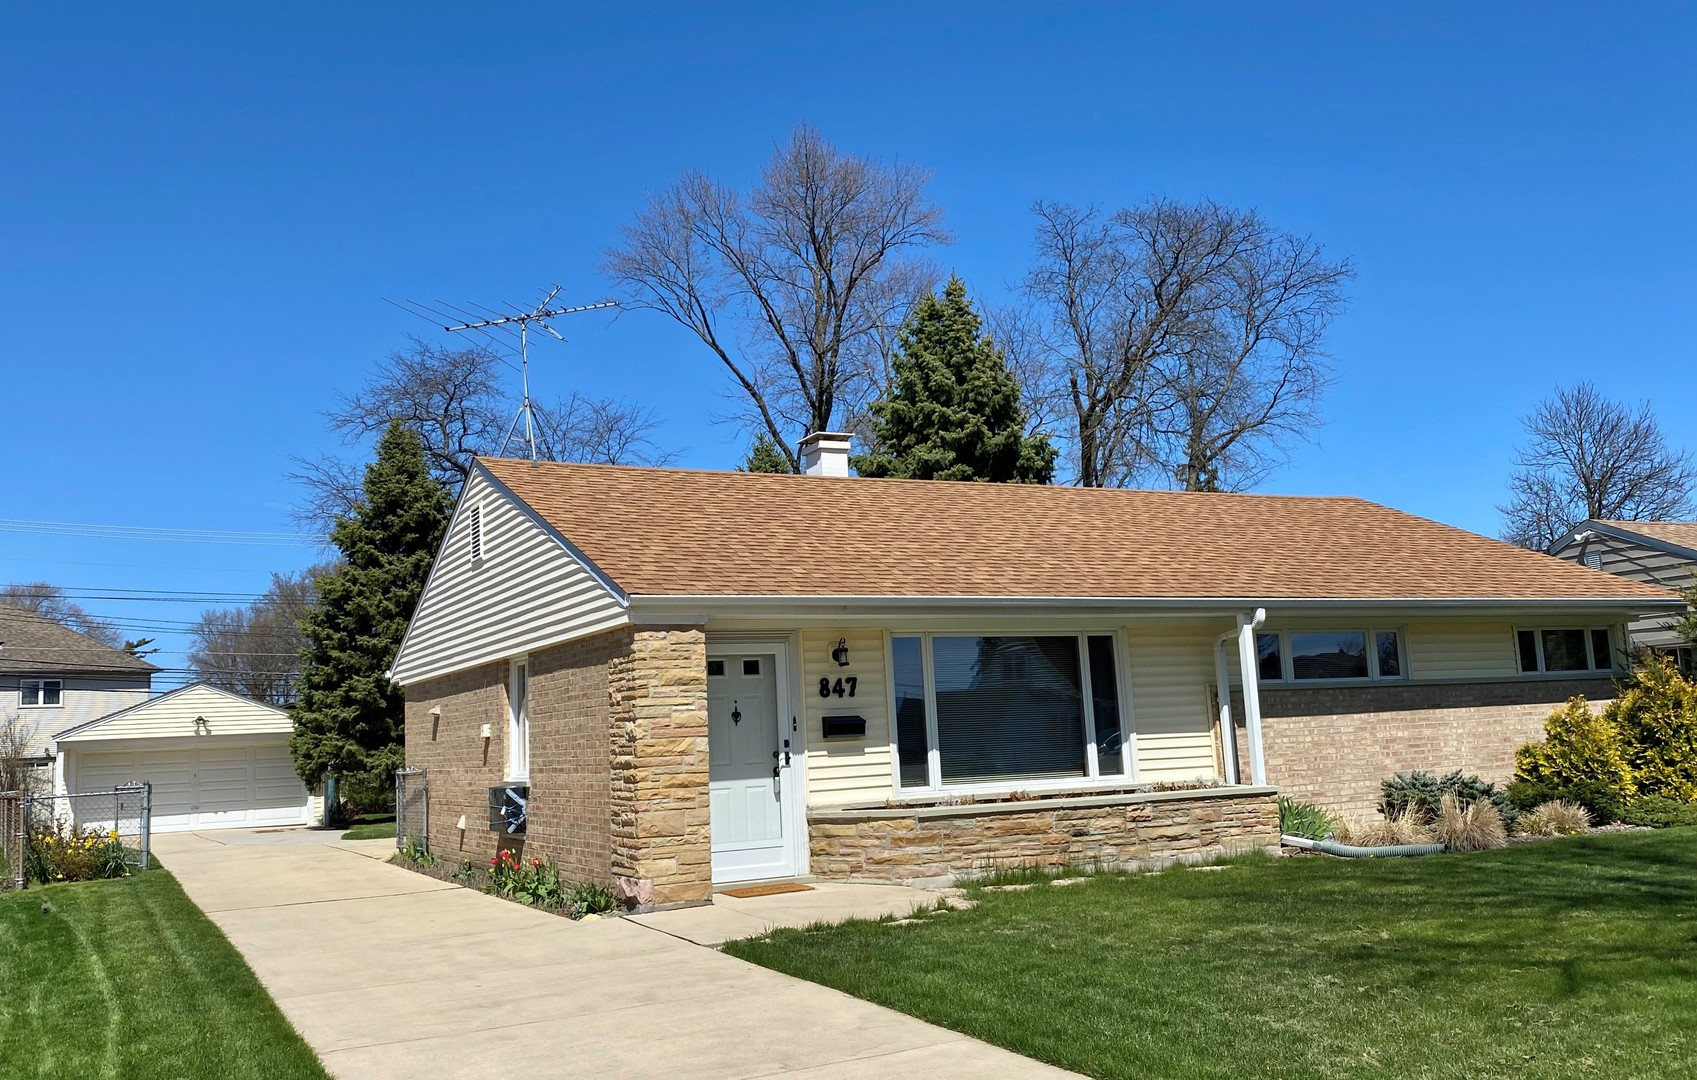 847 East Grant Drive, Des Plaines in Cook County, IL 60016 Home for Sale